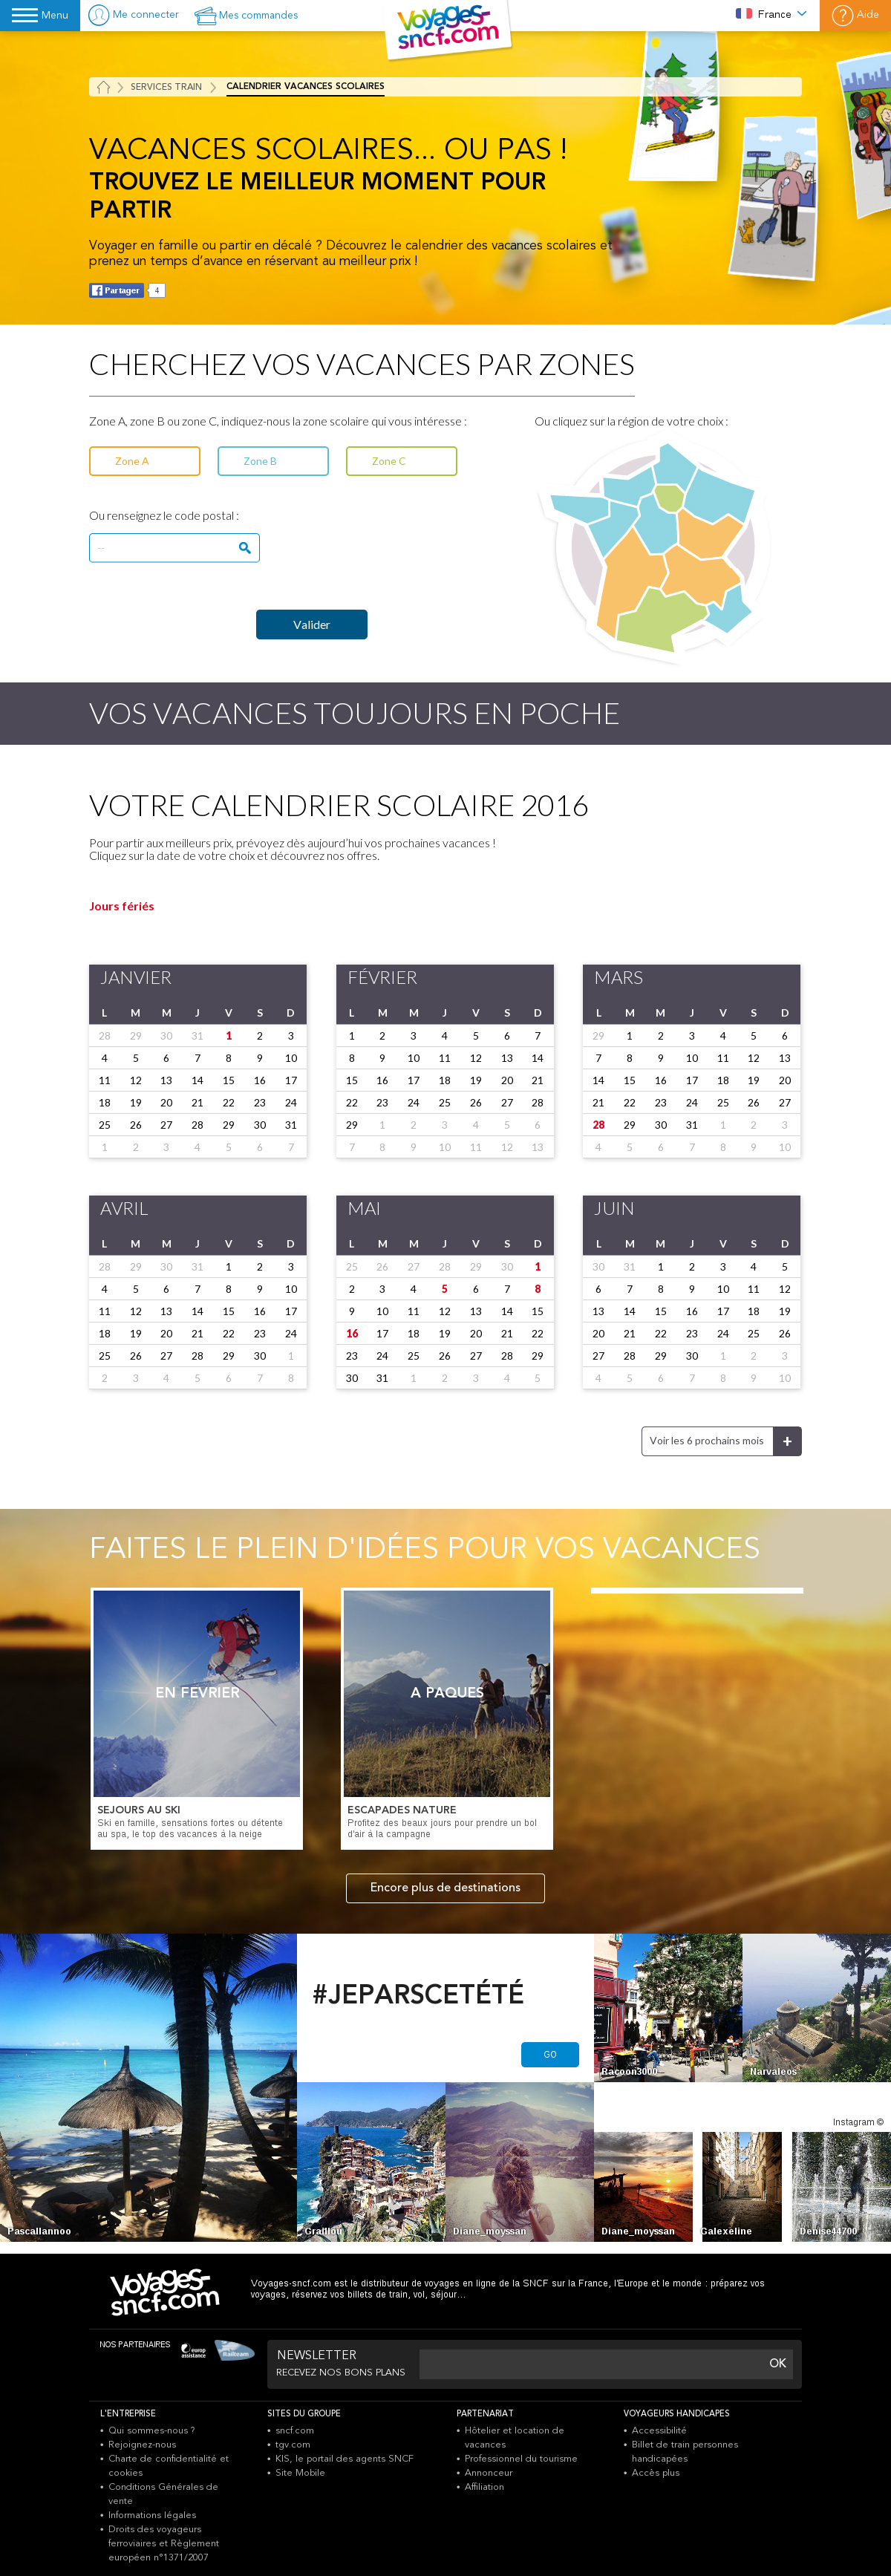 Voyages Sncf Calendrier.Calendrier Vacances Scolaires Webu Grenoble Valence